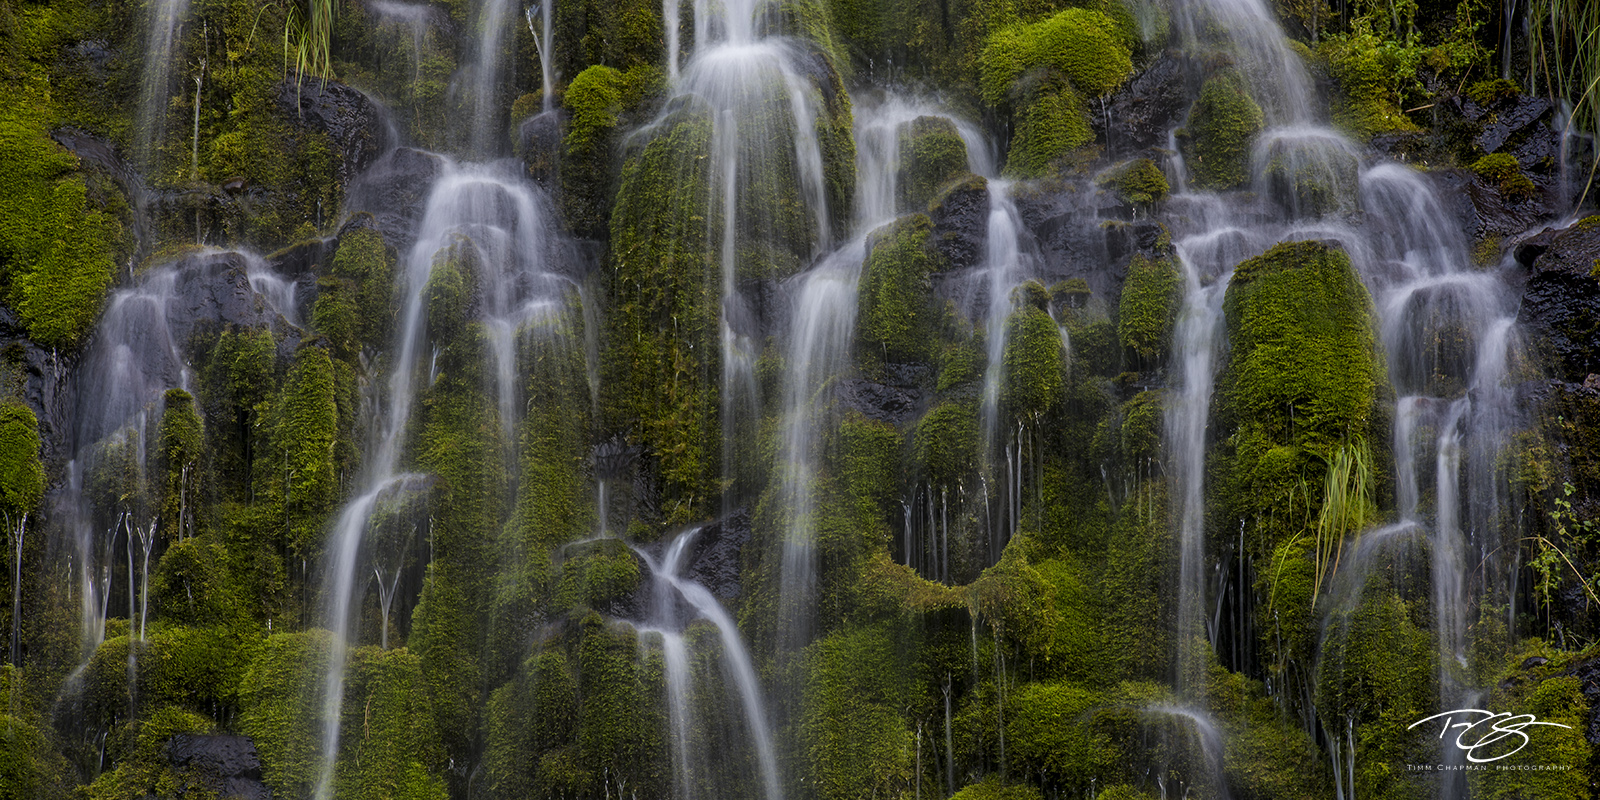 mossbrae falls, waterfall, falls, water, lush, green, dunsmuir, california, cascade, photo